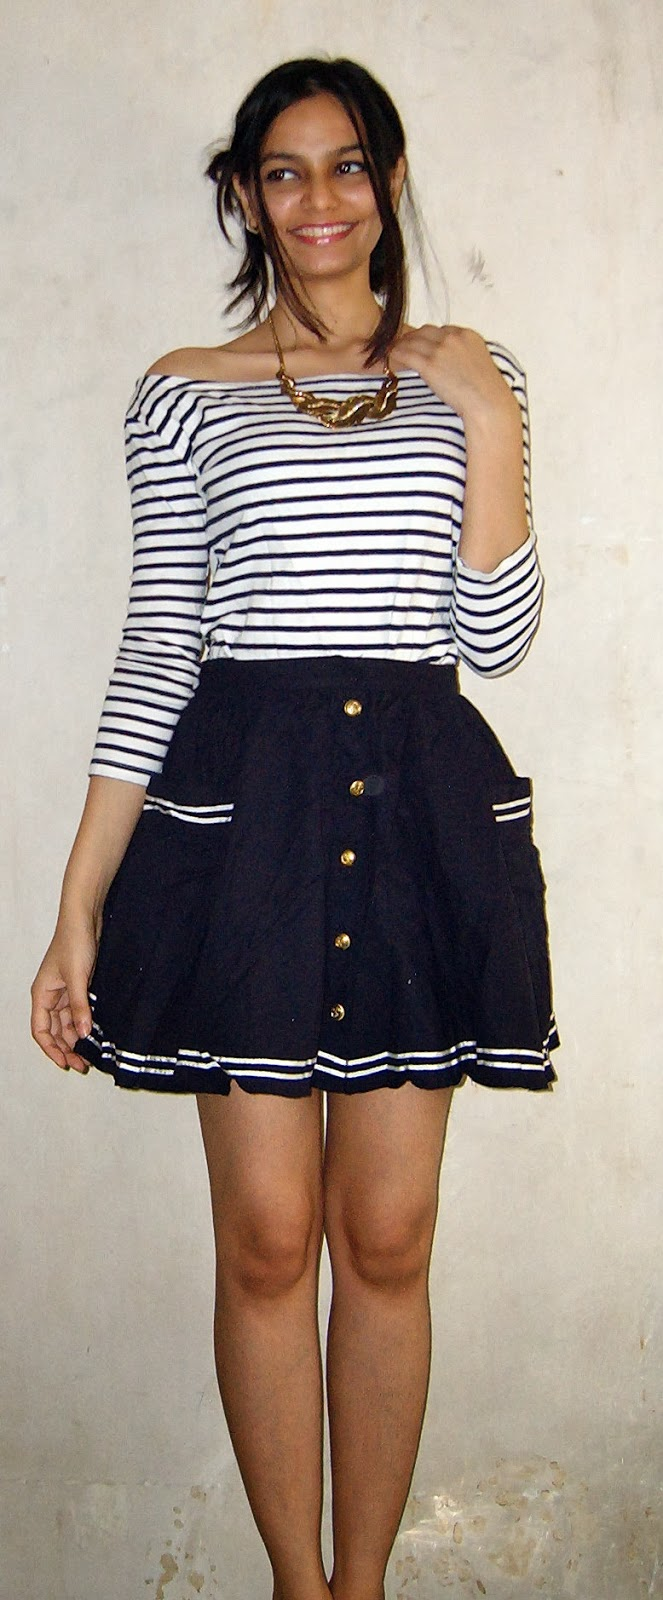 short skirts, topshop skirt, how to style skater skirts, how to wear stripes, white and blue striped shirt, mumbai streetstyle, golden necklace